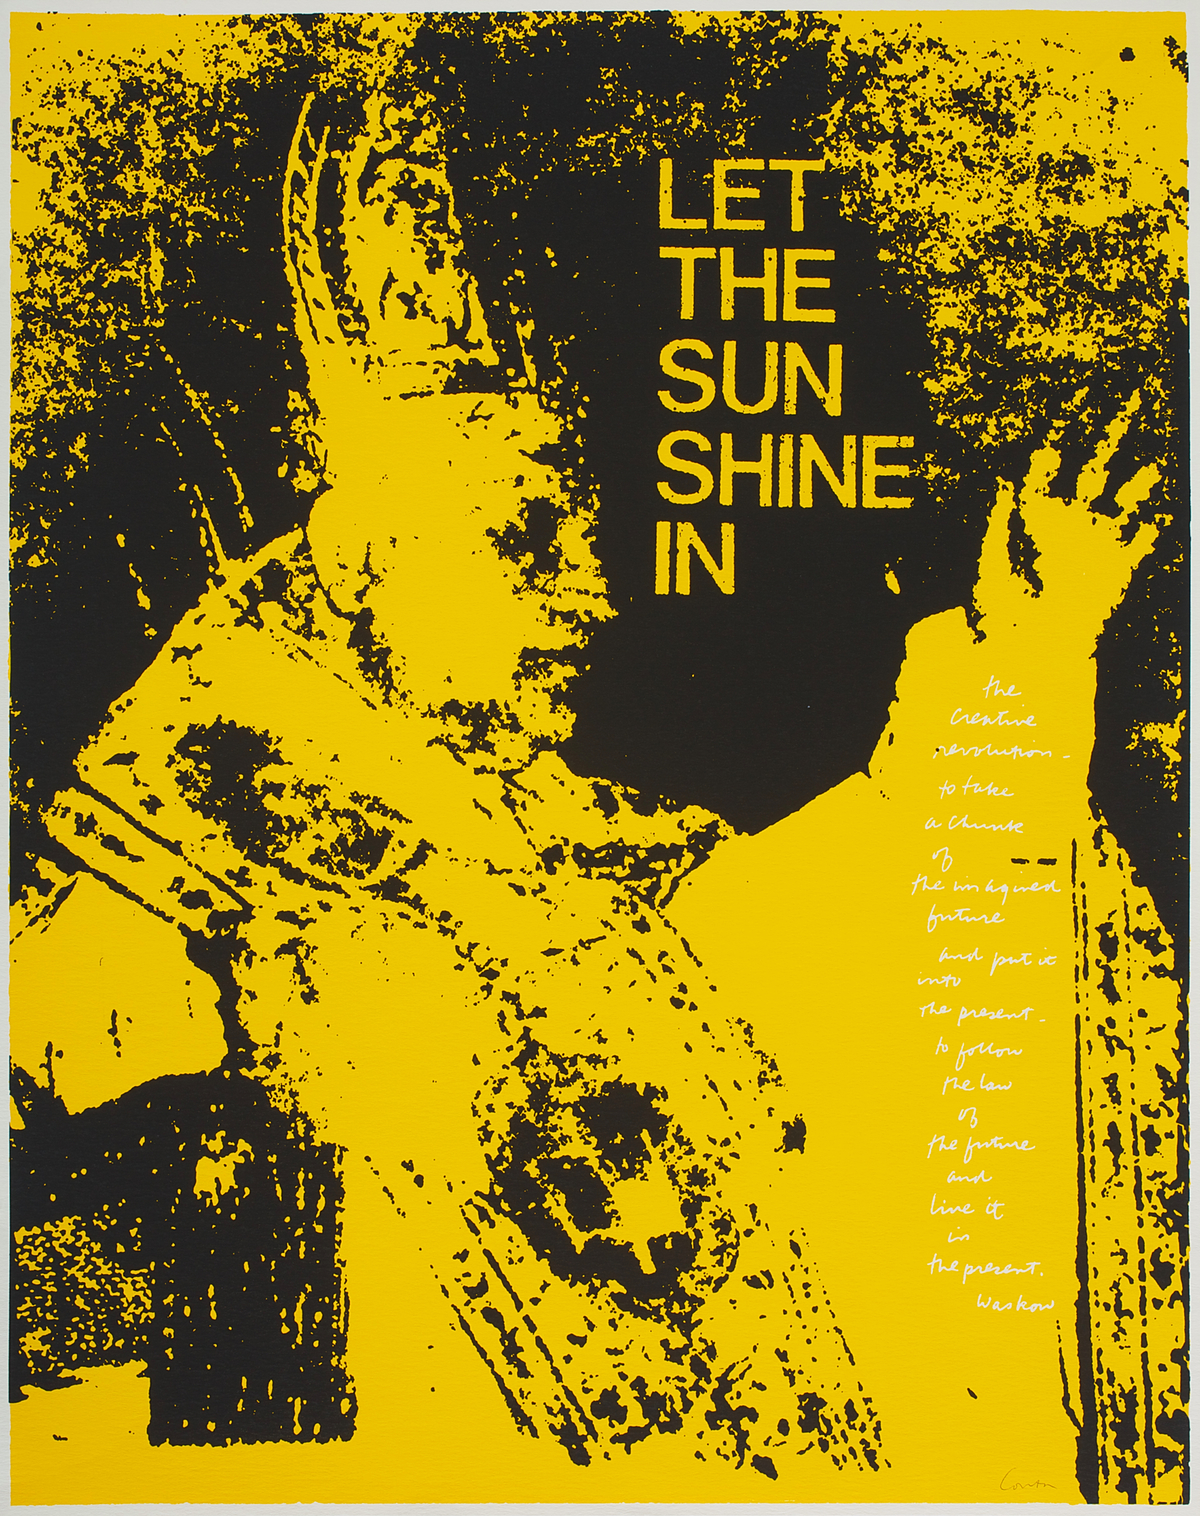 Corita Kent, let the sun shine in,  1968, Serigraph  Courtesy of the Corita Art Center, Immaculate Heart Community, Los Angeles, CA